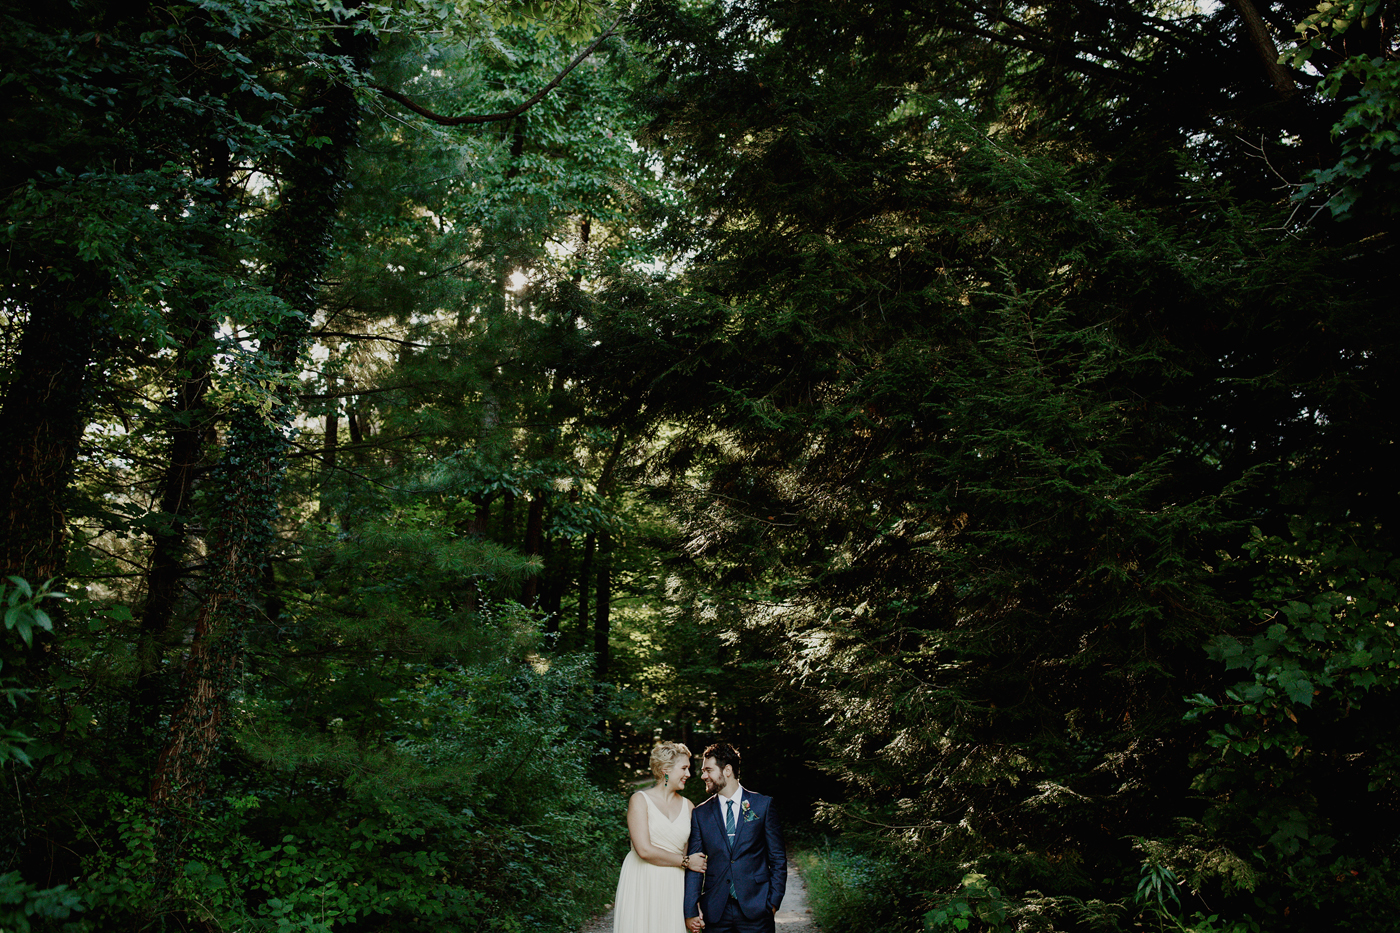 amandavanvels_backyardwedding_0301.jpg